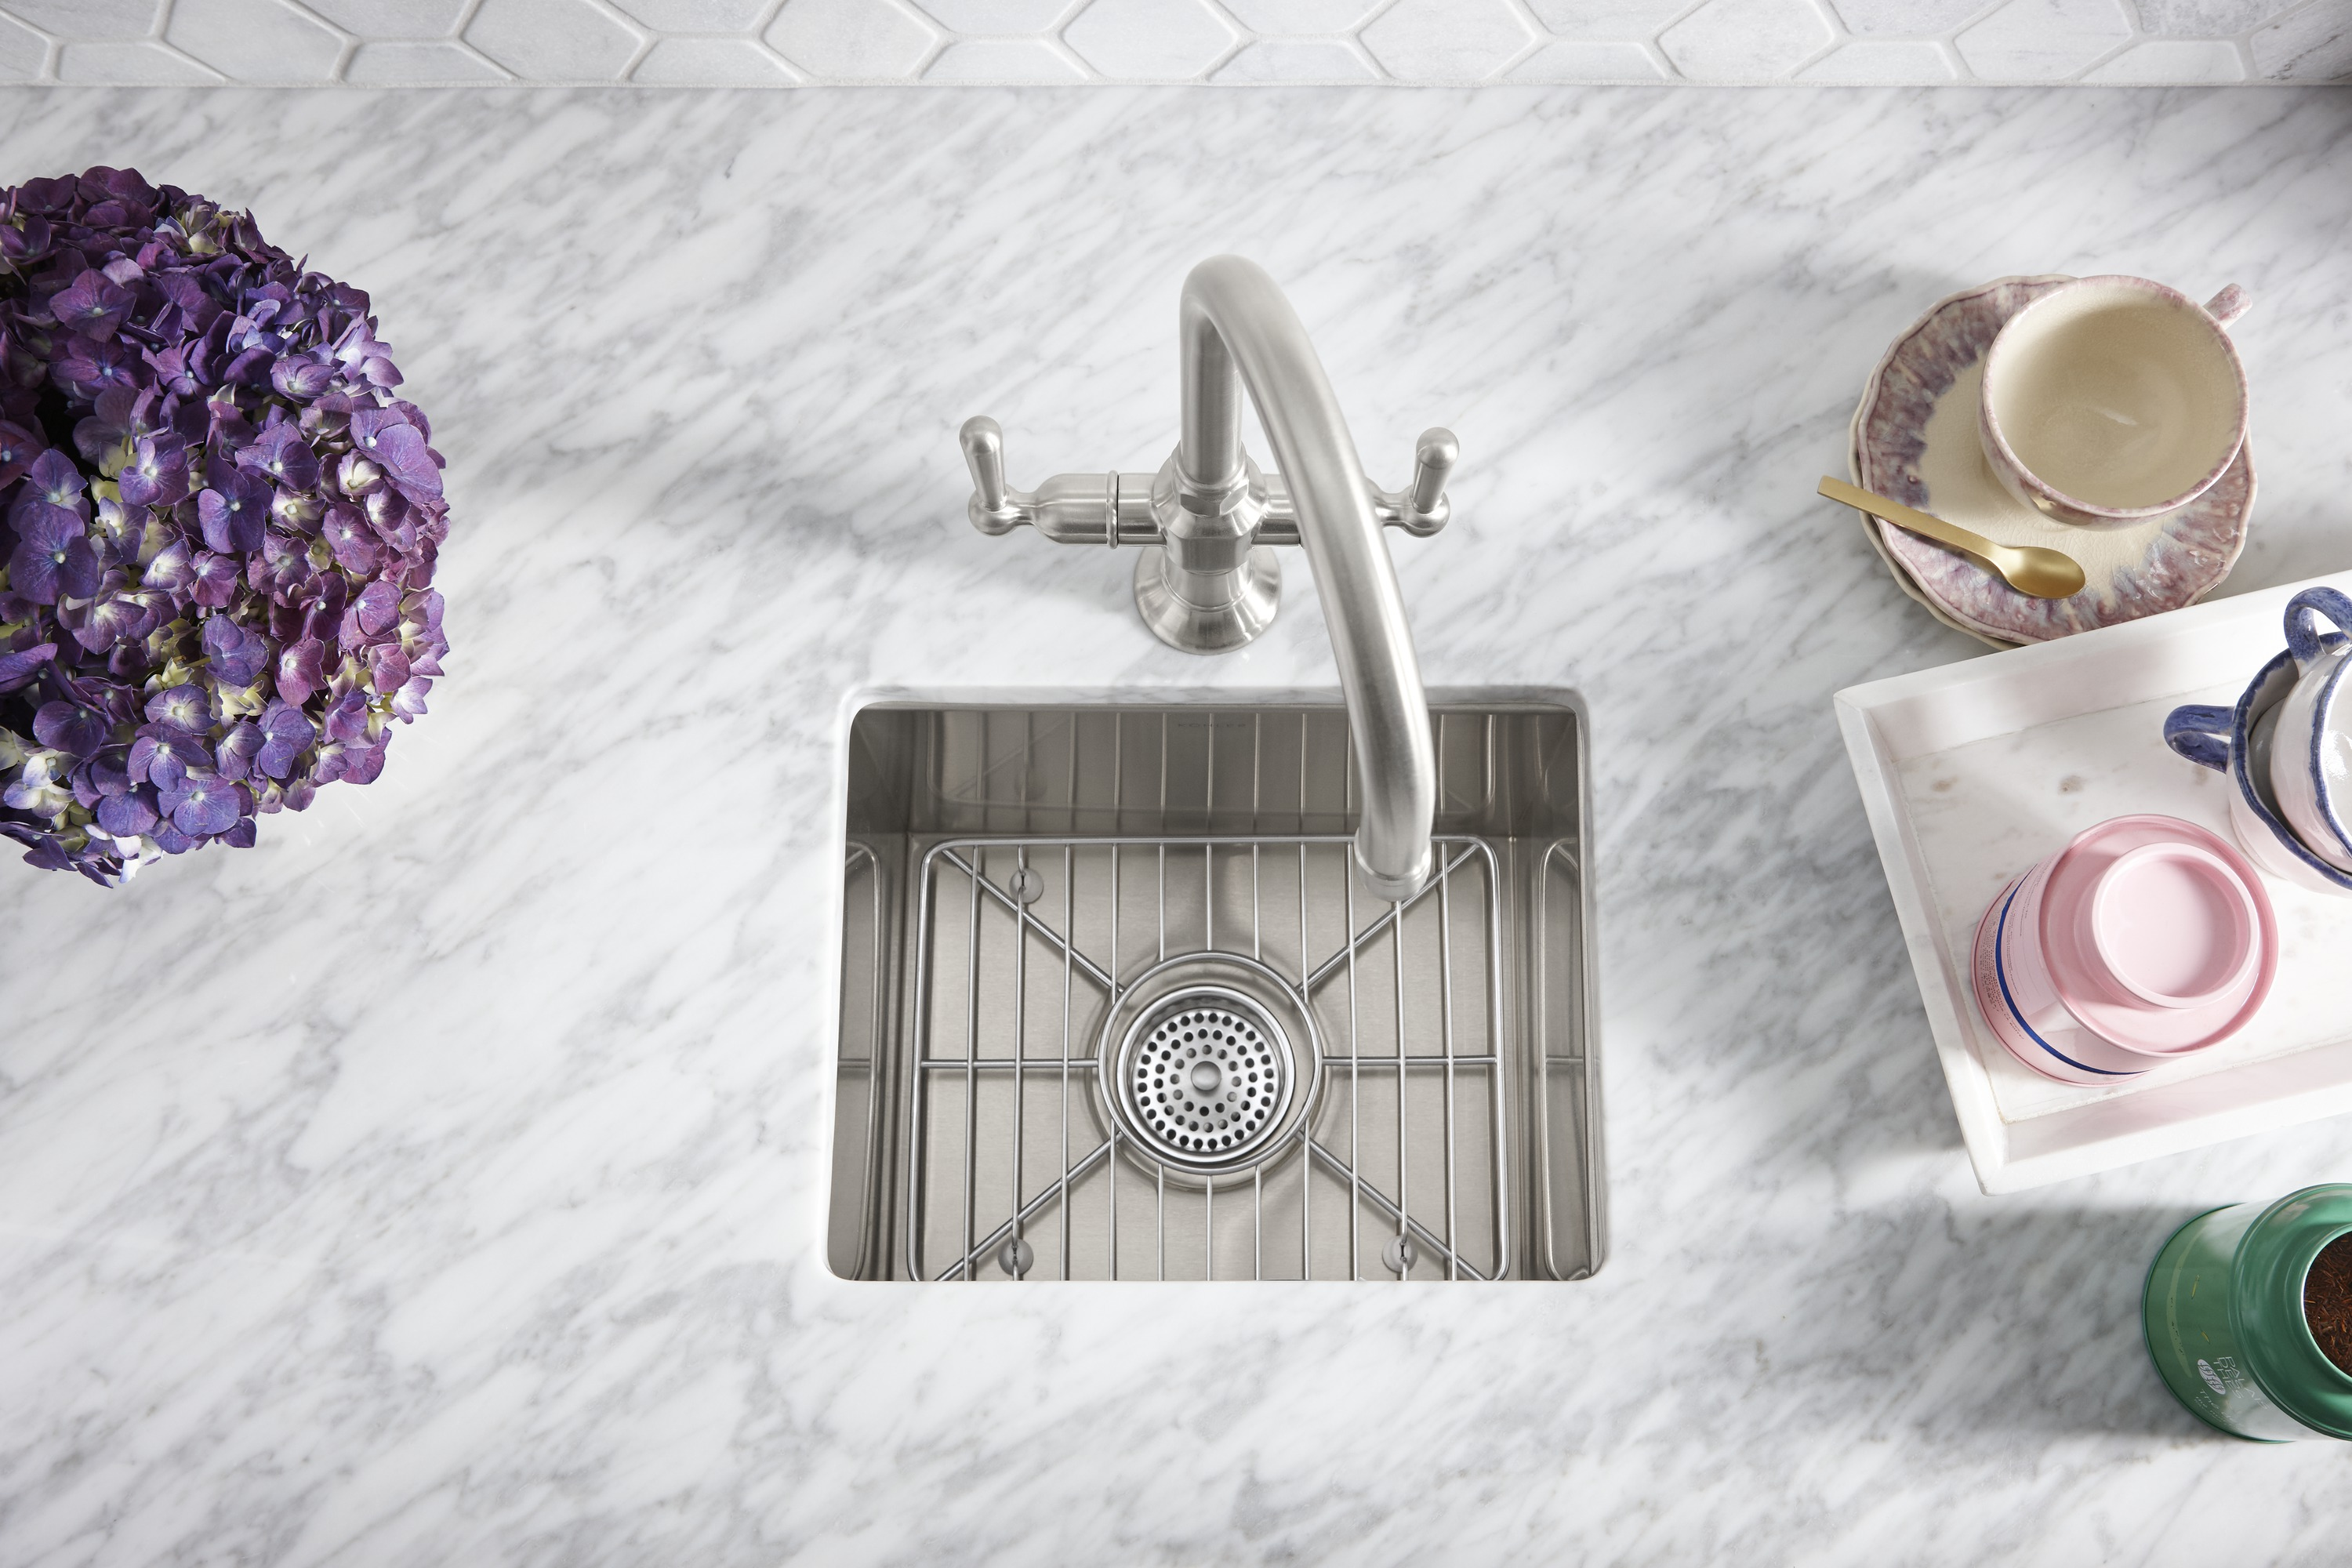 HiRise™ bar faucet     Vault™ under-mount bar sink     With a custom-fit rack, this bar sink is also perfect for rinsing fruits and vegetables.